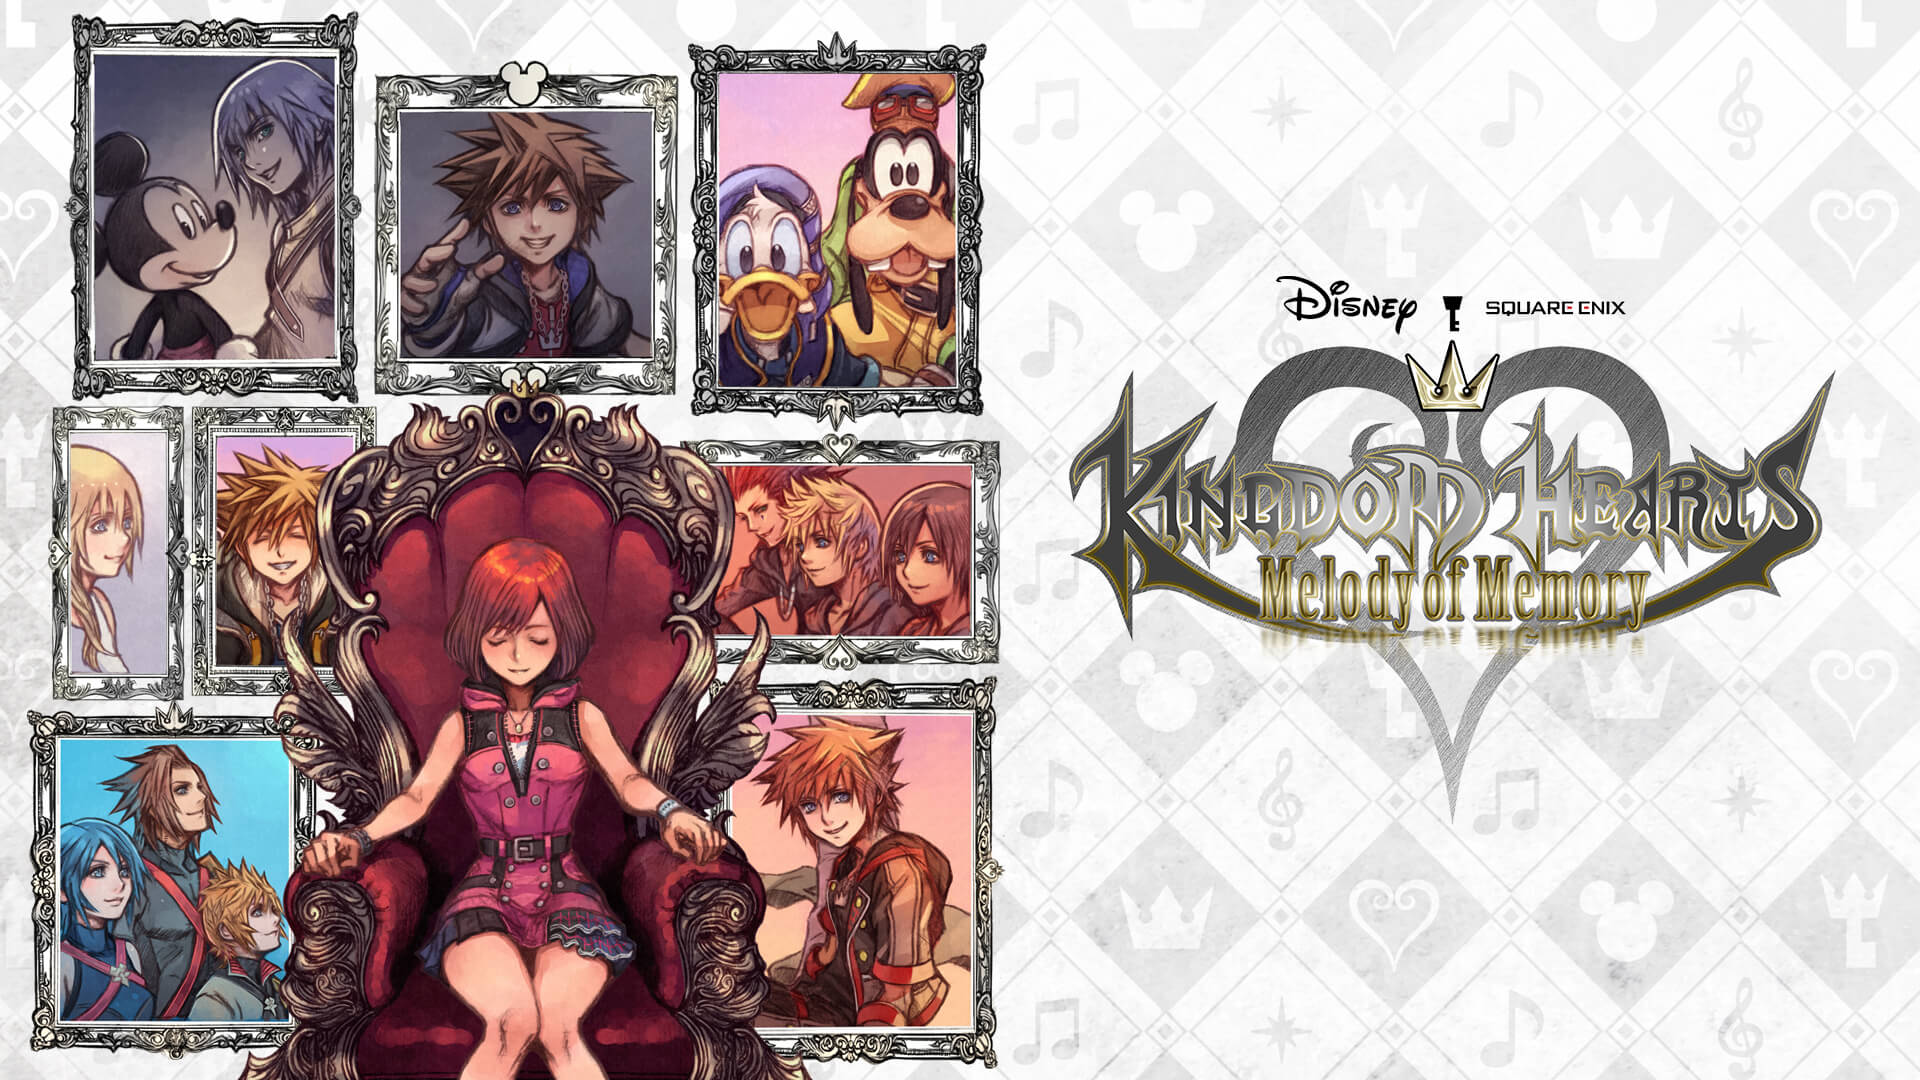 [Review] Kingdom Hearts Melody of Memory